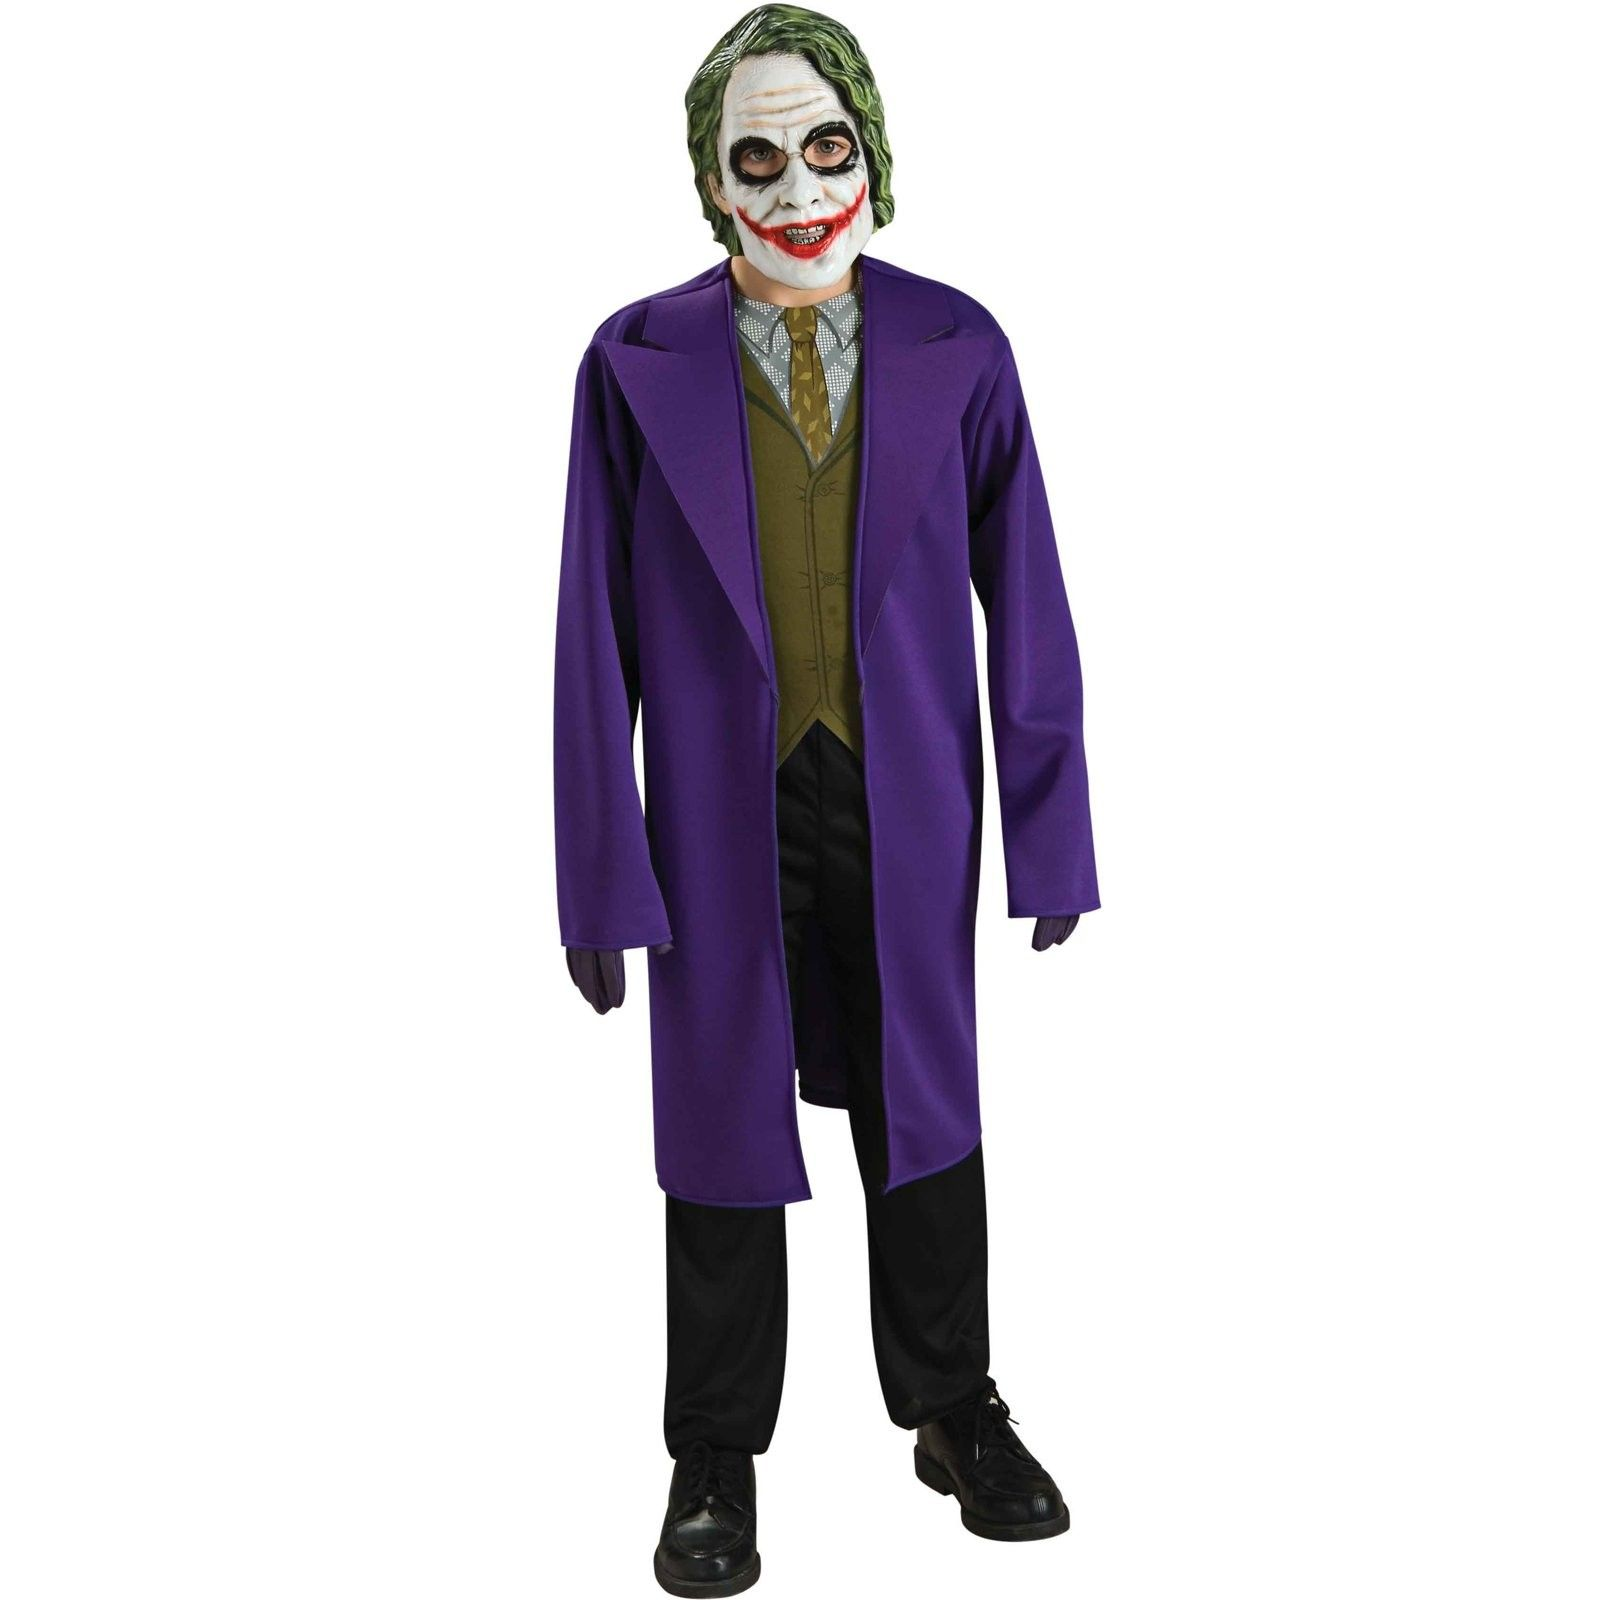 Batman Dark Knight The Joker Tween Costume - Includes Mask jacket and printed shirt. Pants shoes and gloves not included. Available in Standard Tween ...  sc 1 st  Pinterest & Batman Dark Knight The Joker Tween Costume - Includes: Mask jacket ...